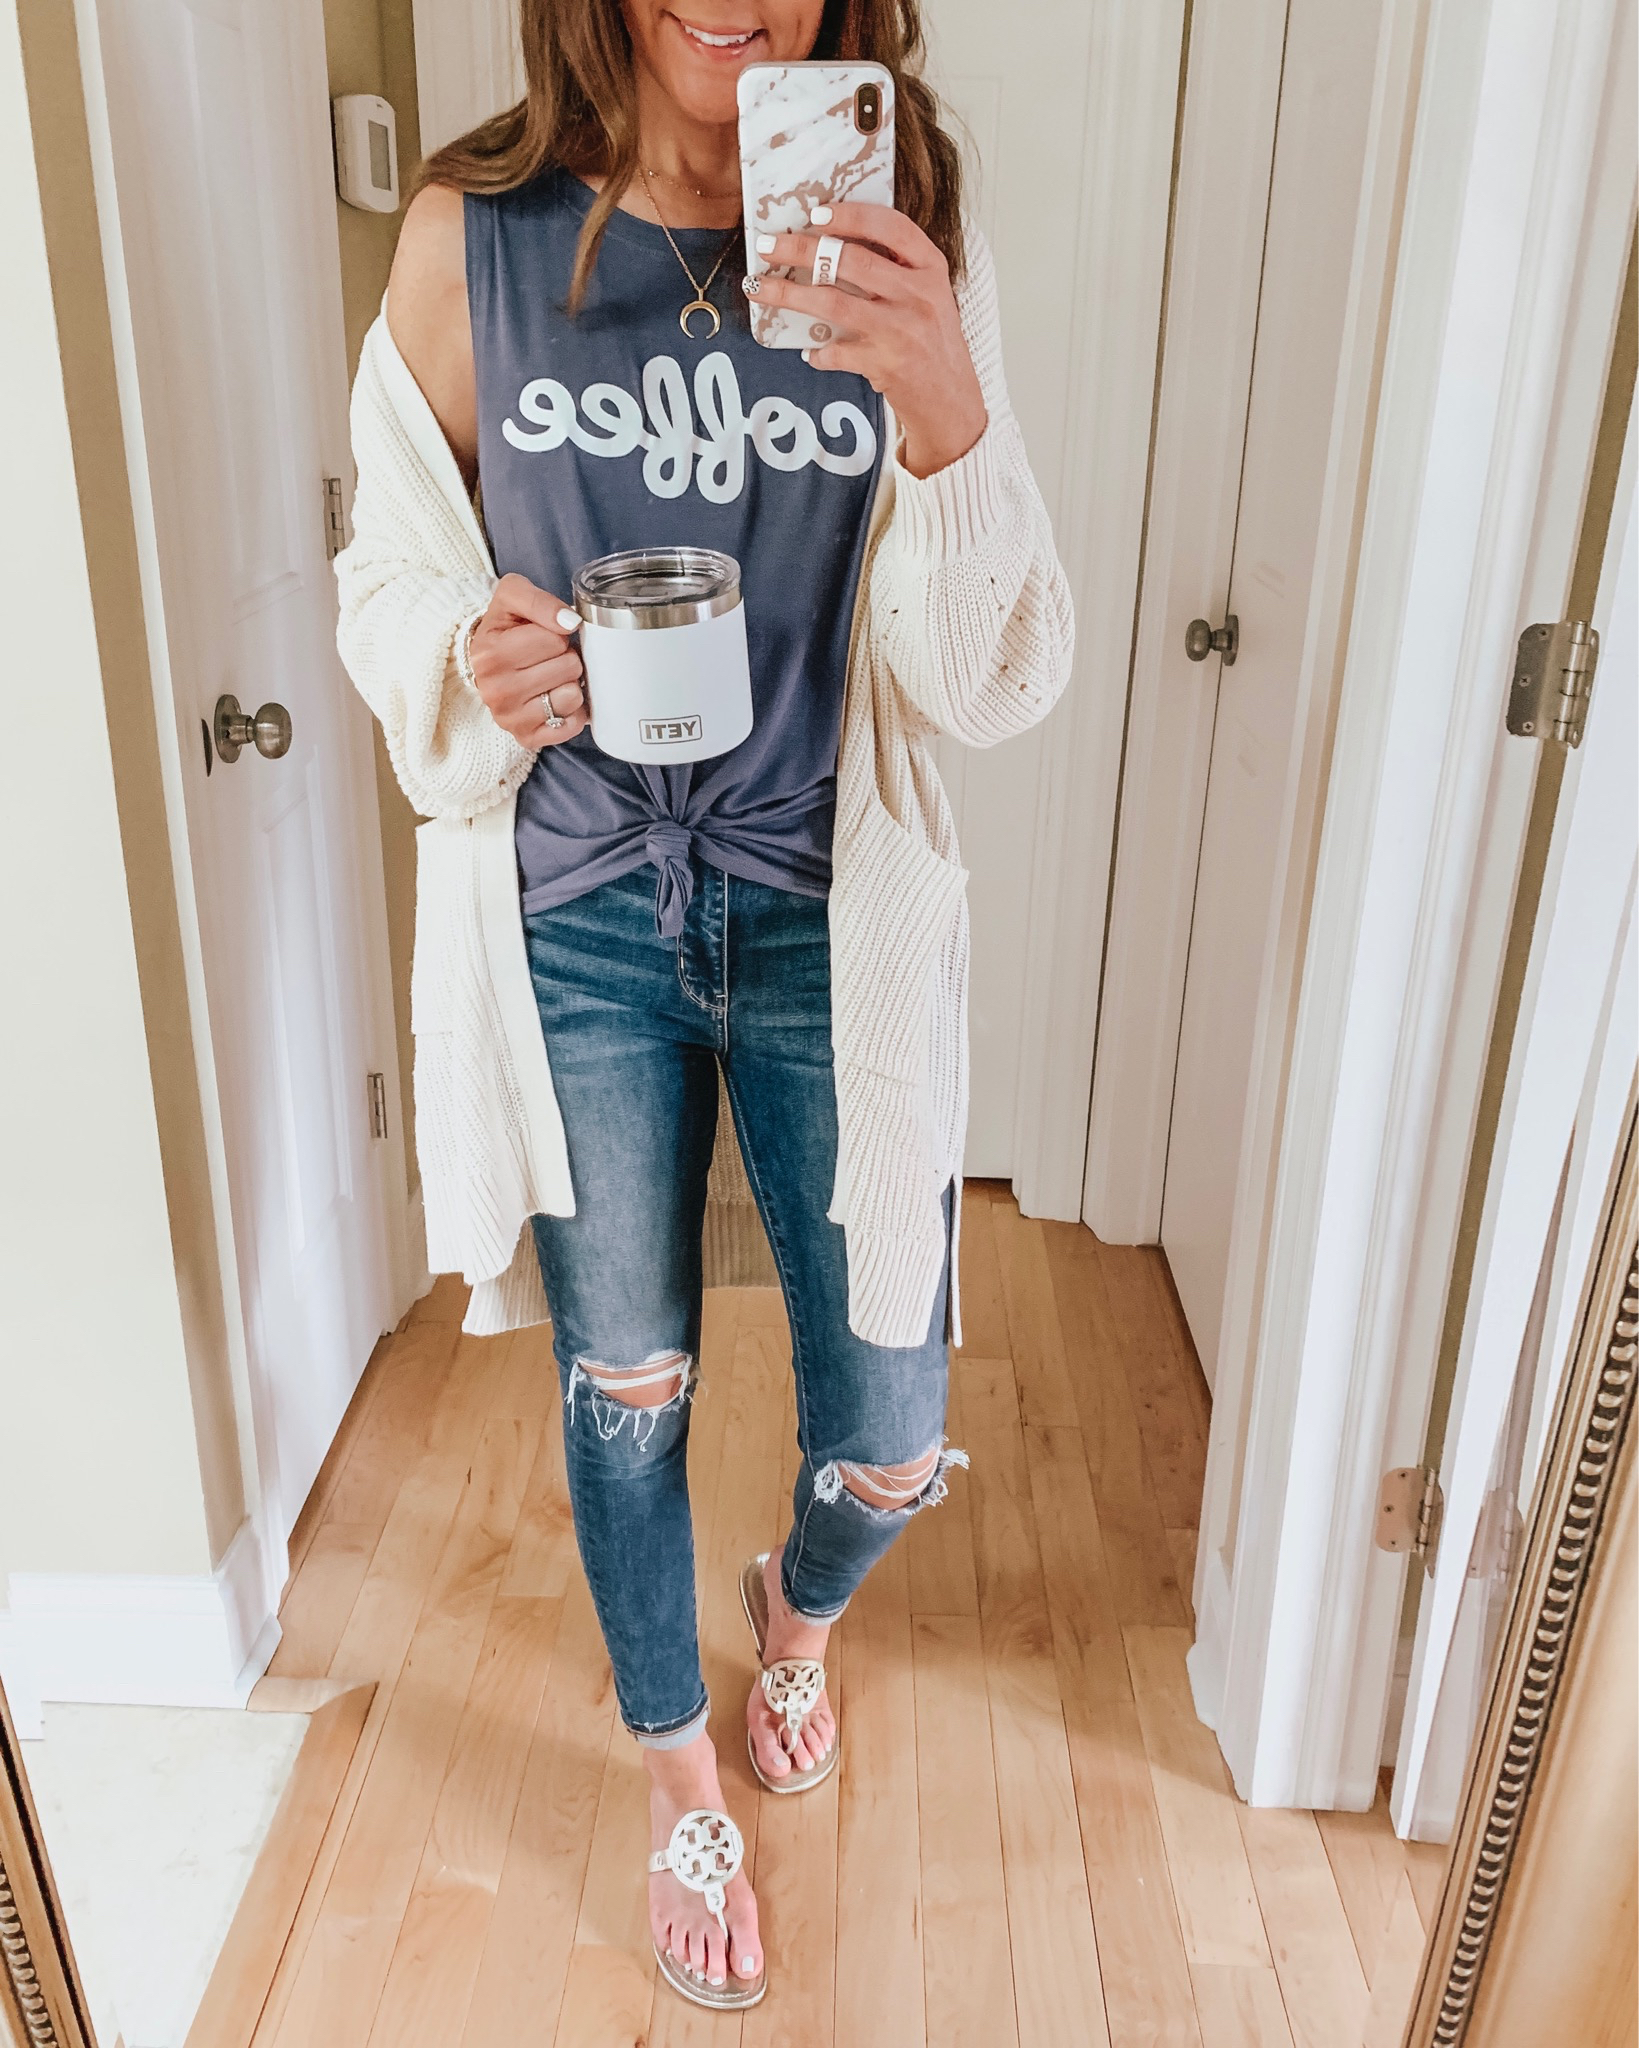 how to shop social media, Target coffee tee, oversized cardigan, yeti mug, weekend outfit